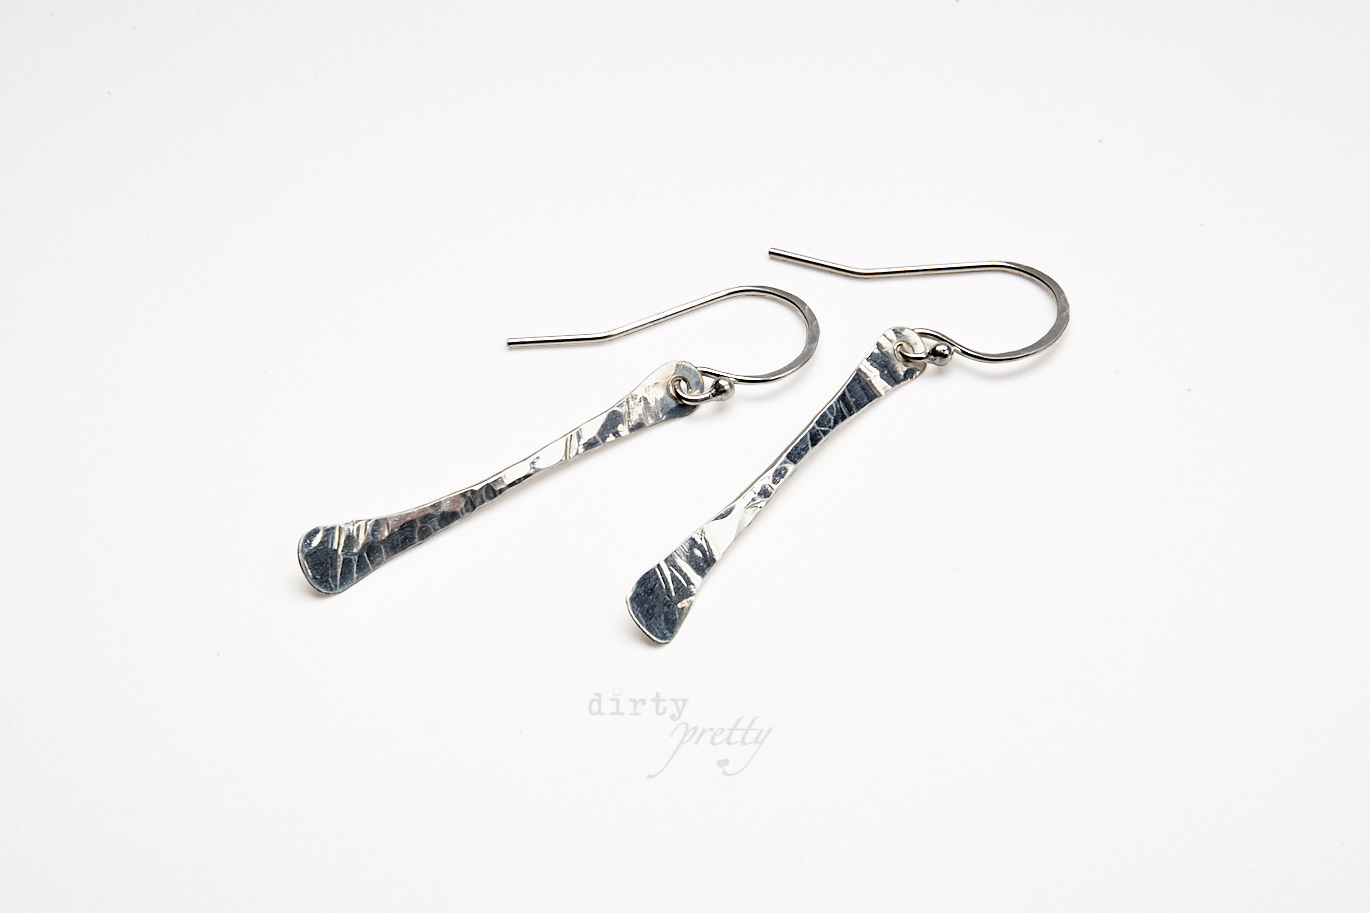 Great Gifts for her - Simple Chic Silver Earrings by dirtypretty artwear - Gift ideas for her